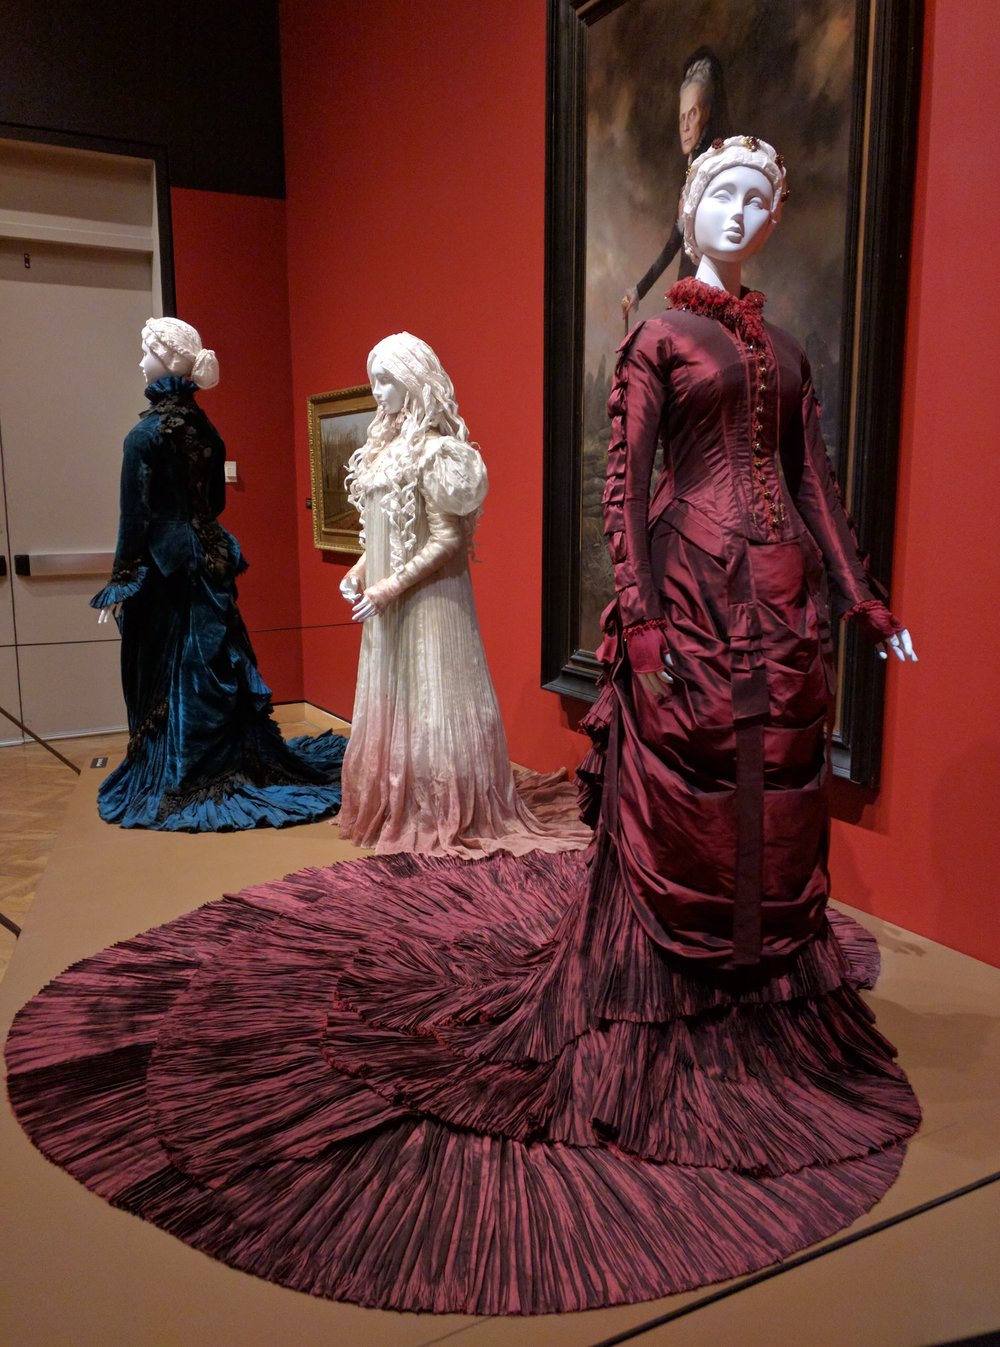 Costumes from Crimson Peak on display at Mia